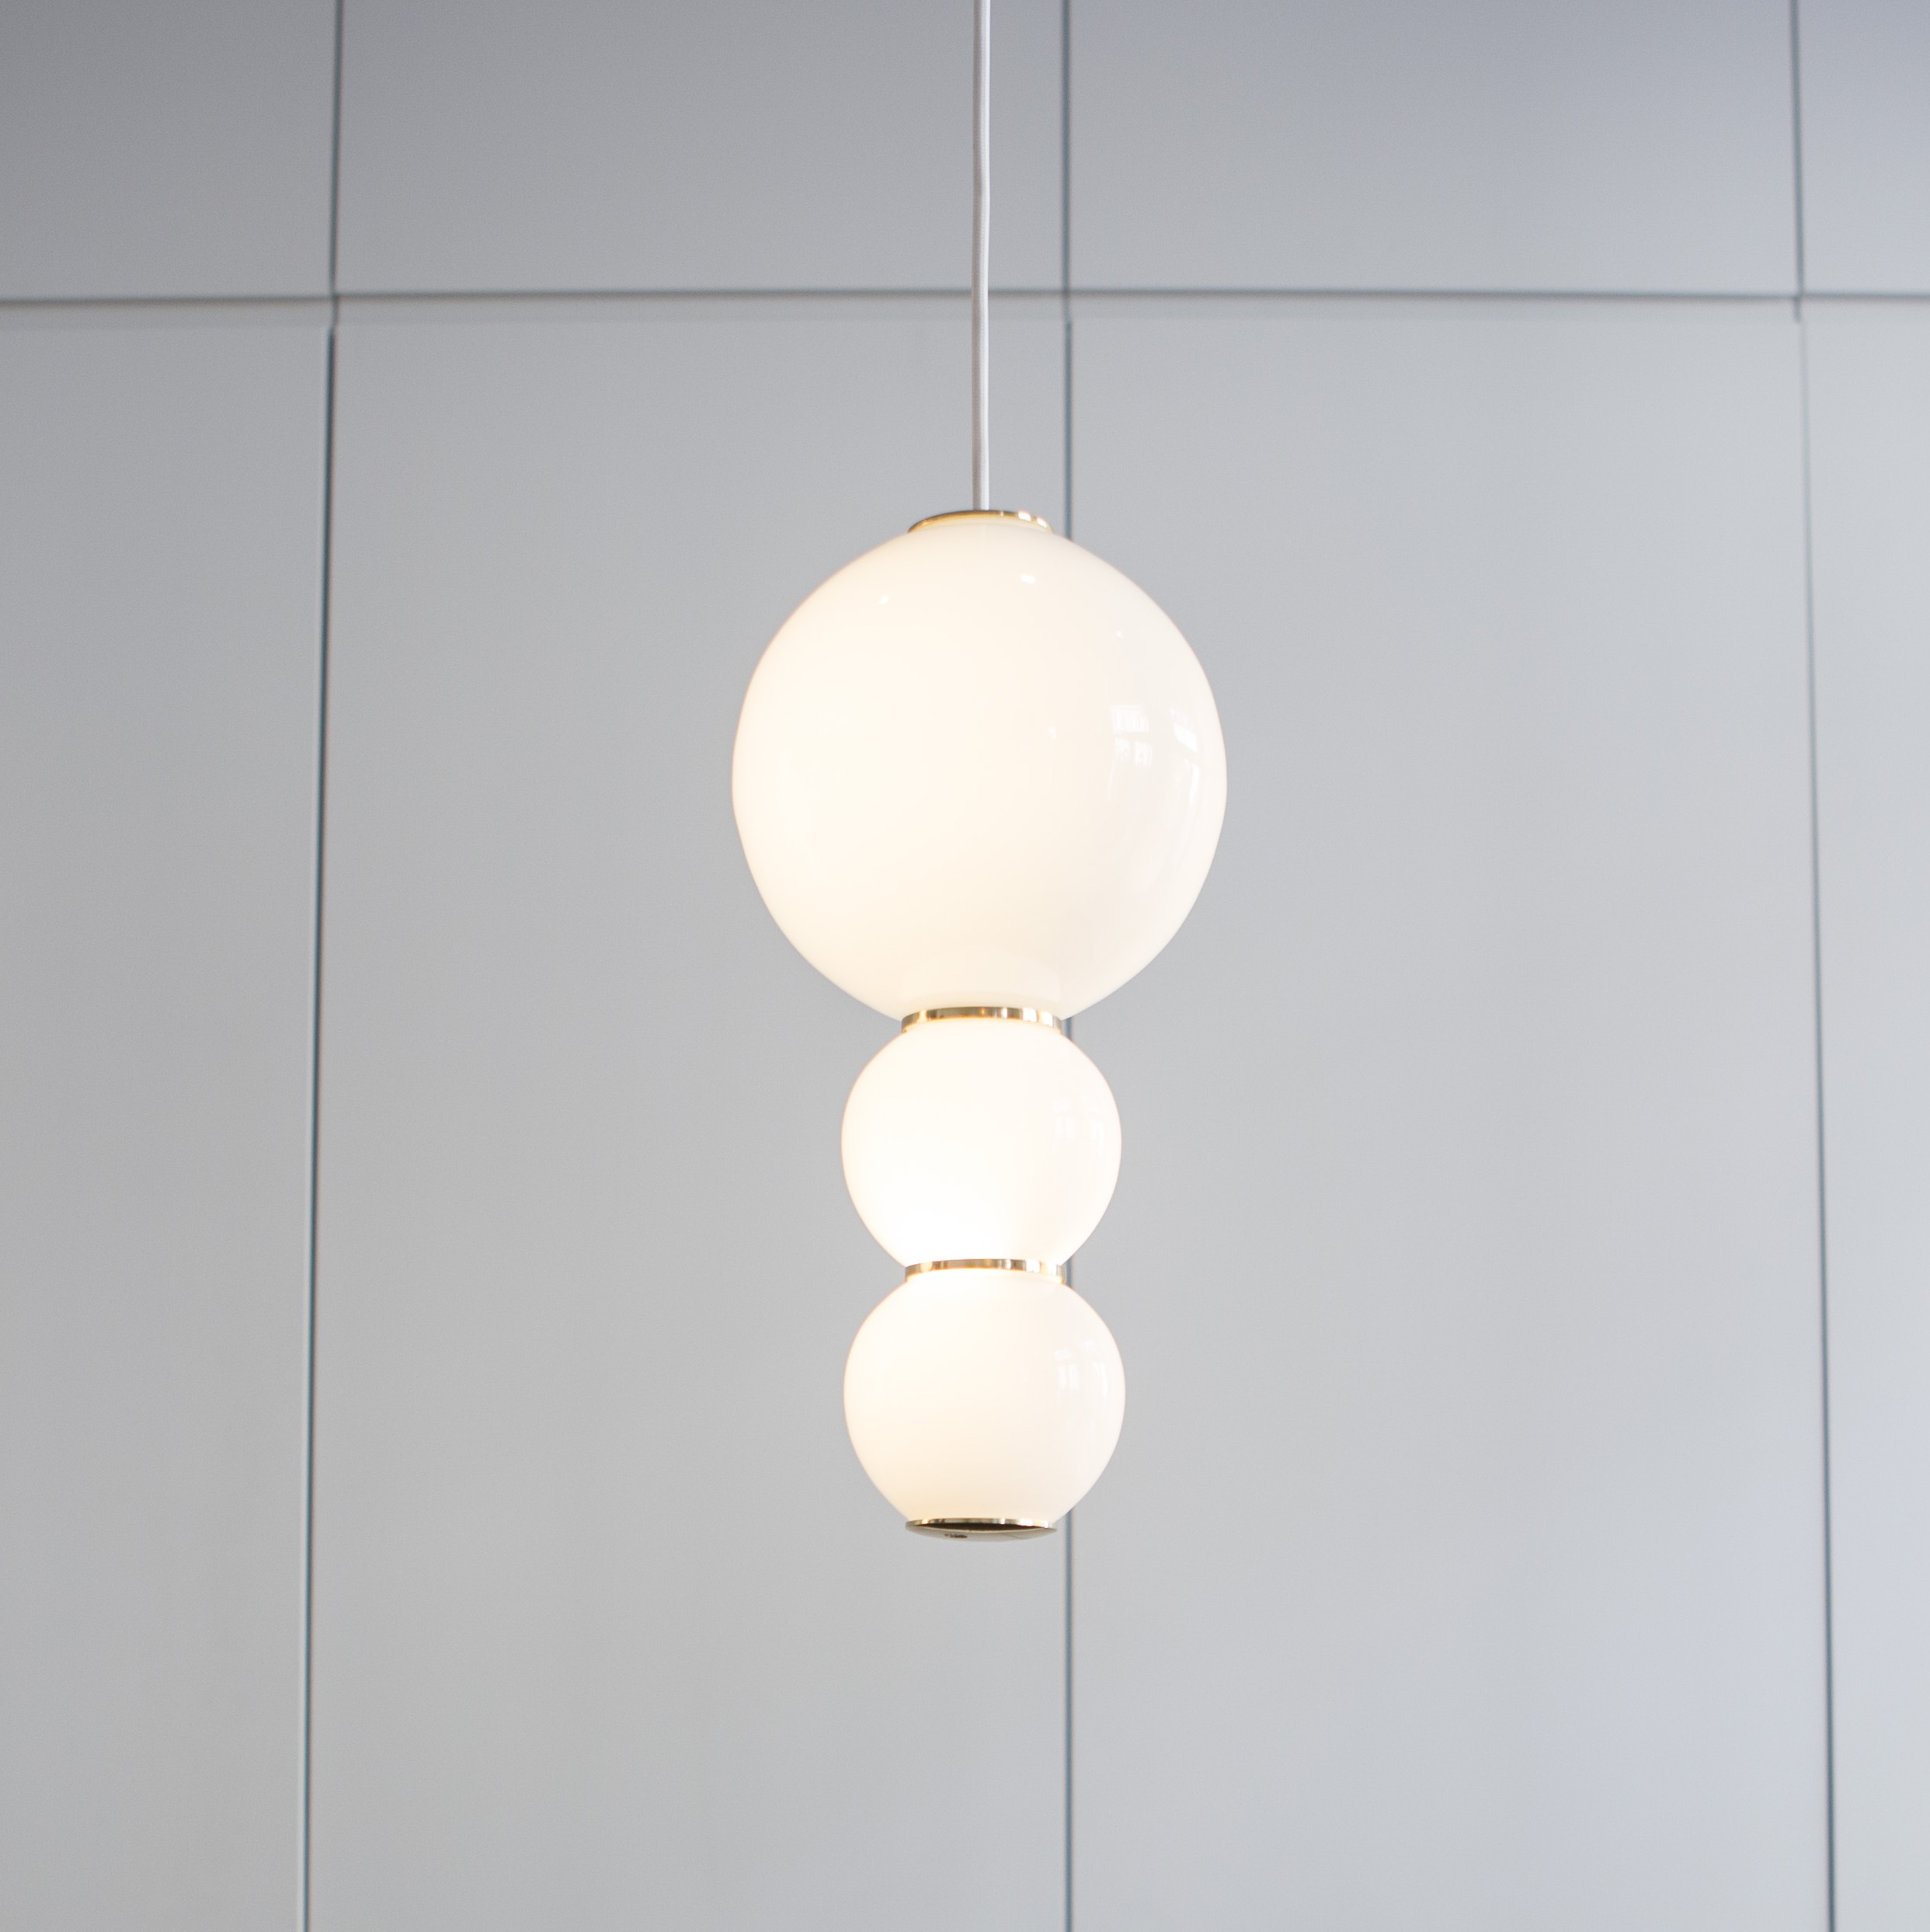 Suspension led c pearls blanc or 18cm formagenda for Suspension luminaire blanc